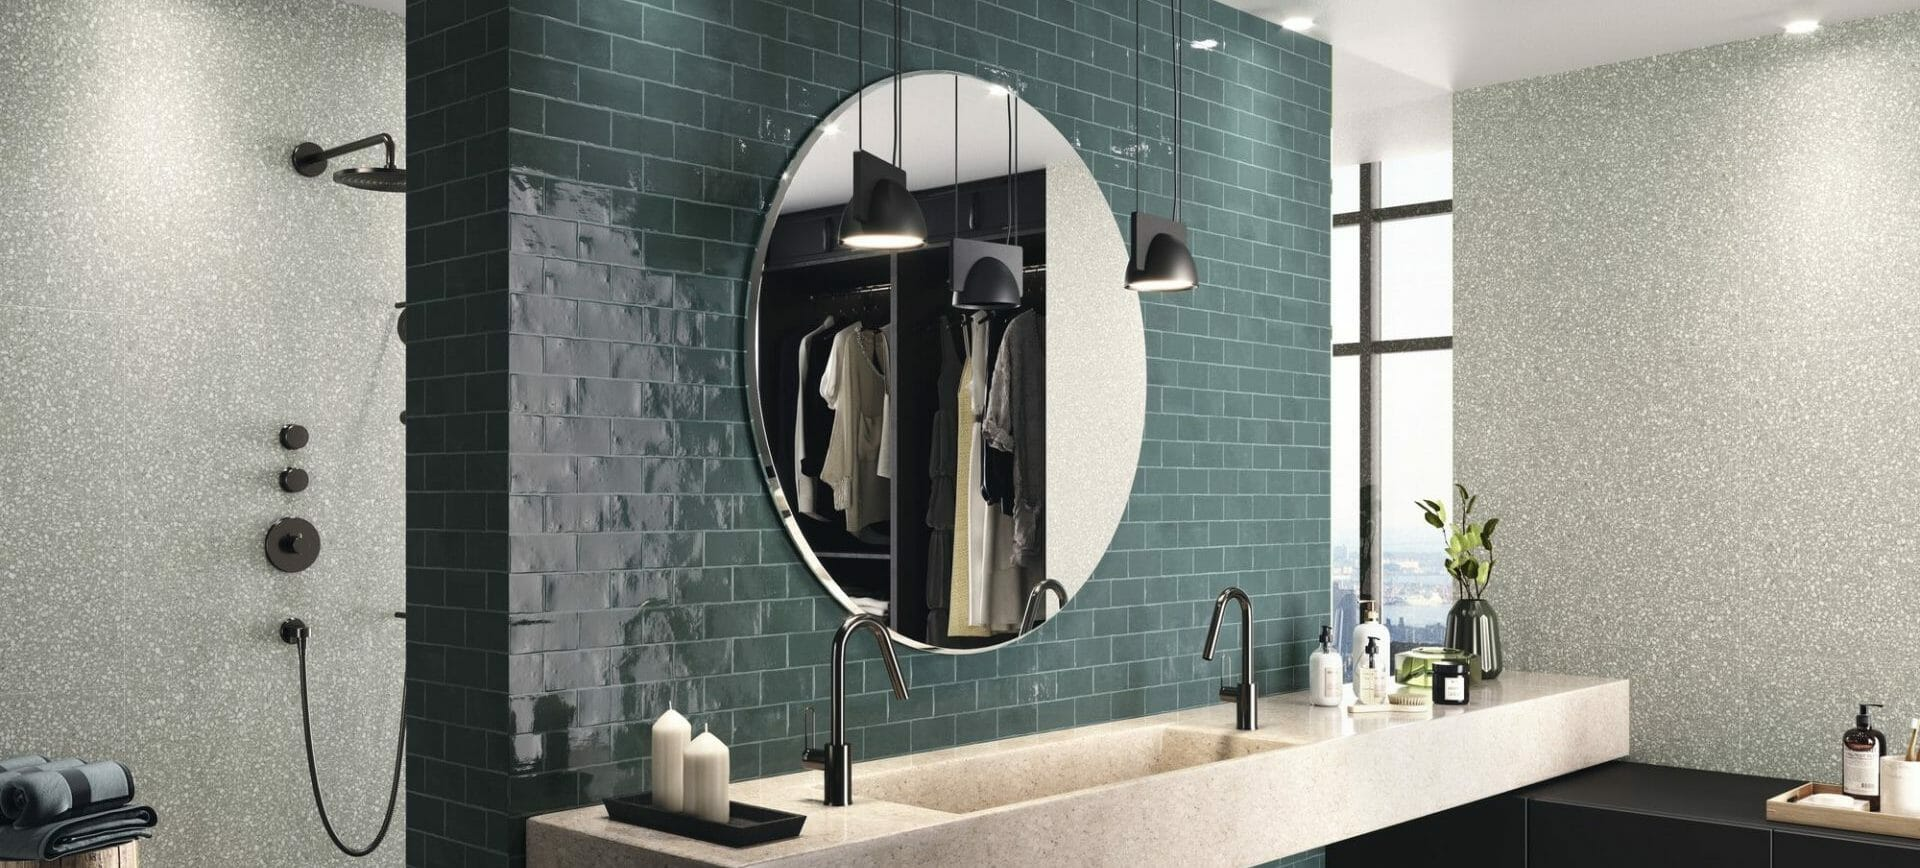 Best Ceramic Floor & Wall Tiles Supplier 2021- South West England